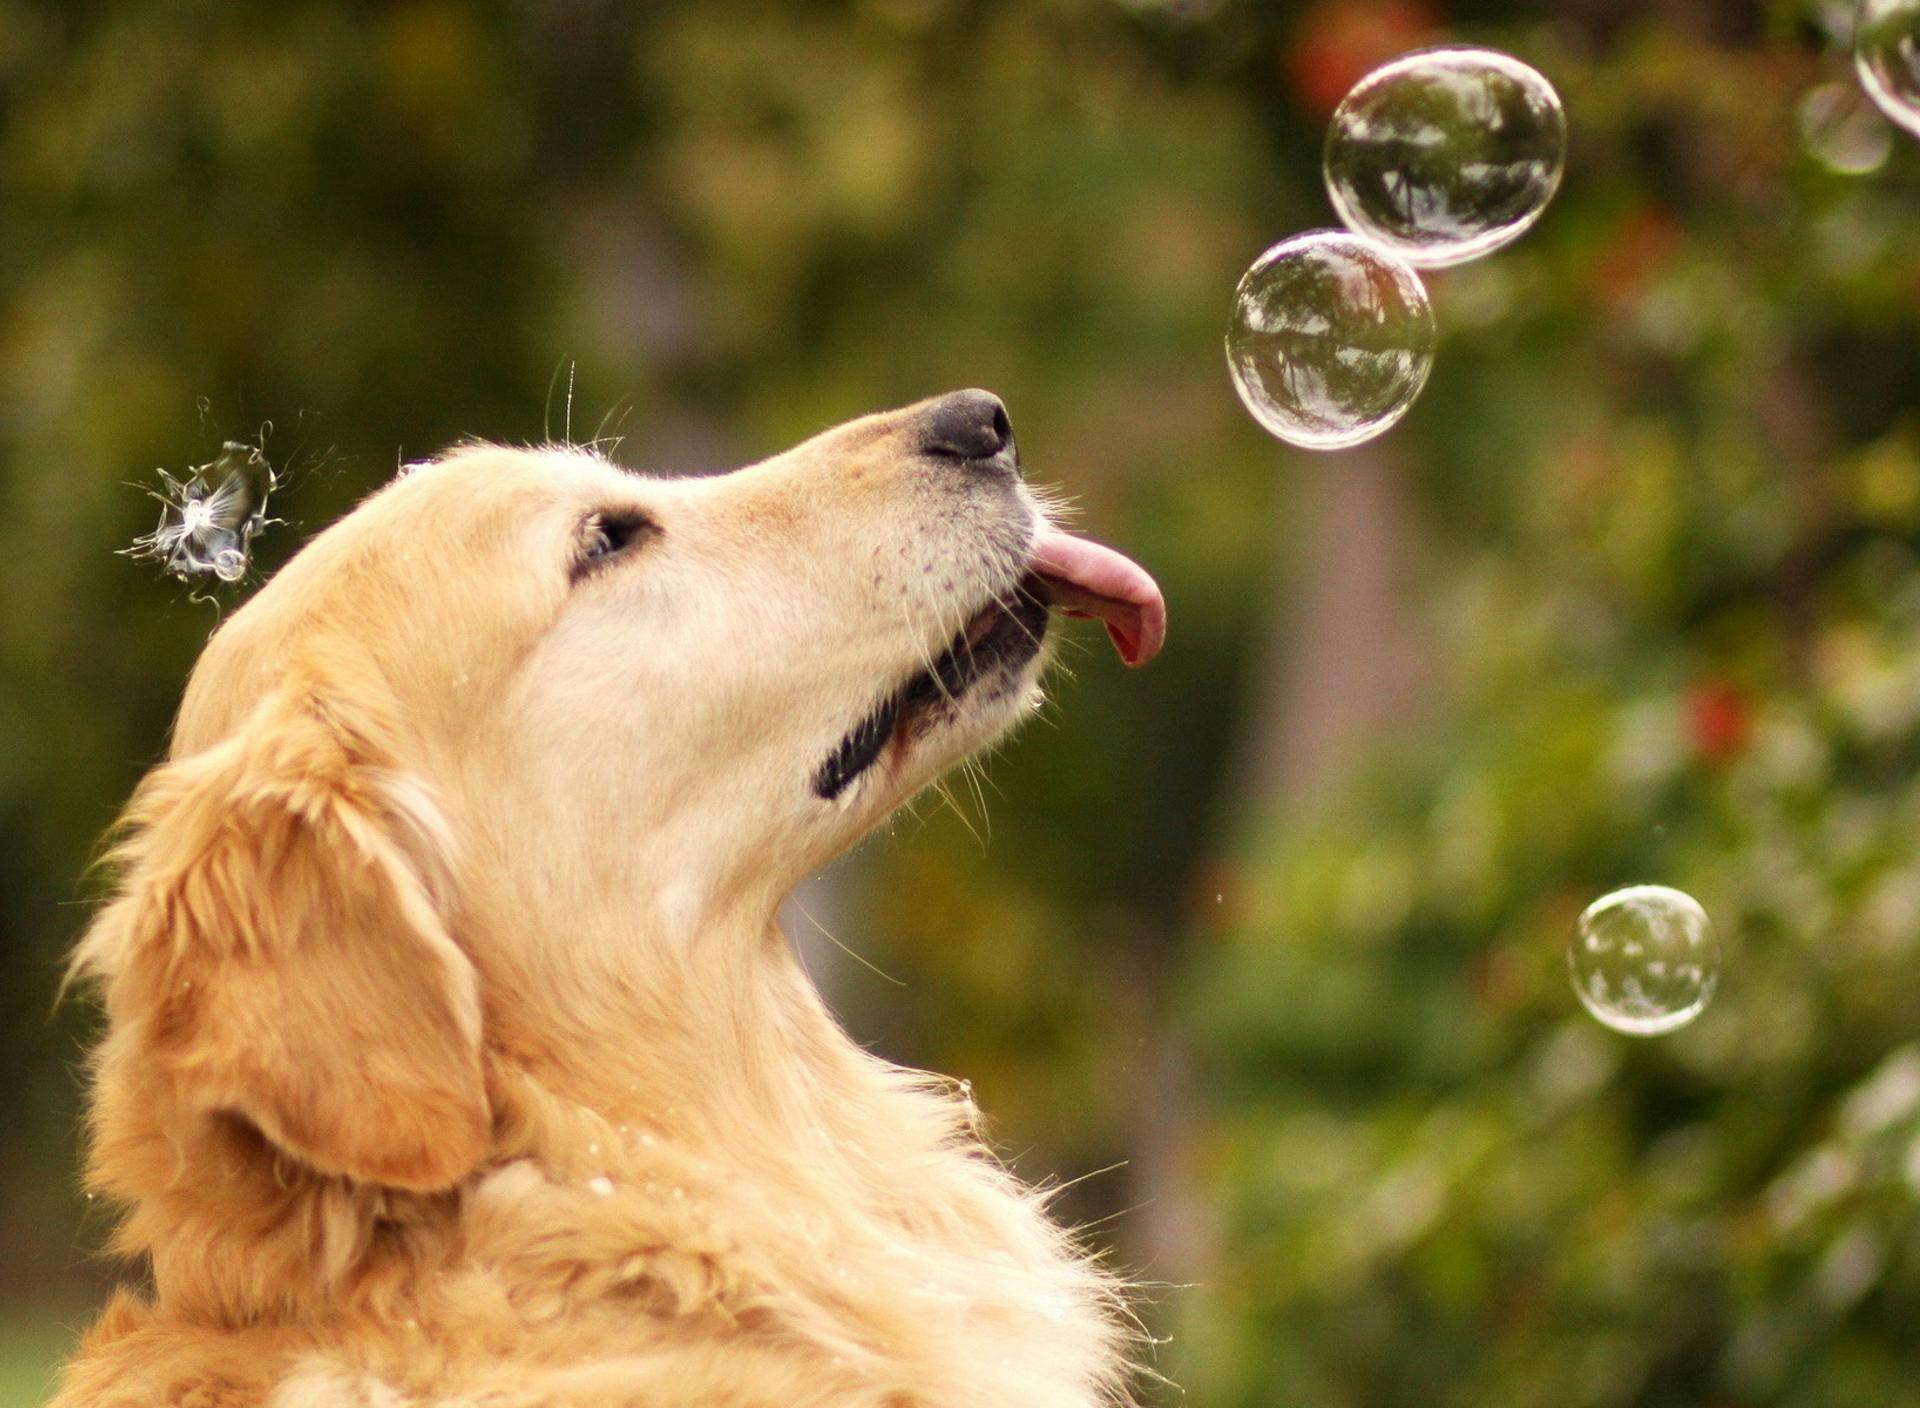 sweet dog play with water soap balloons wallpaper download 1920x1408